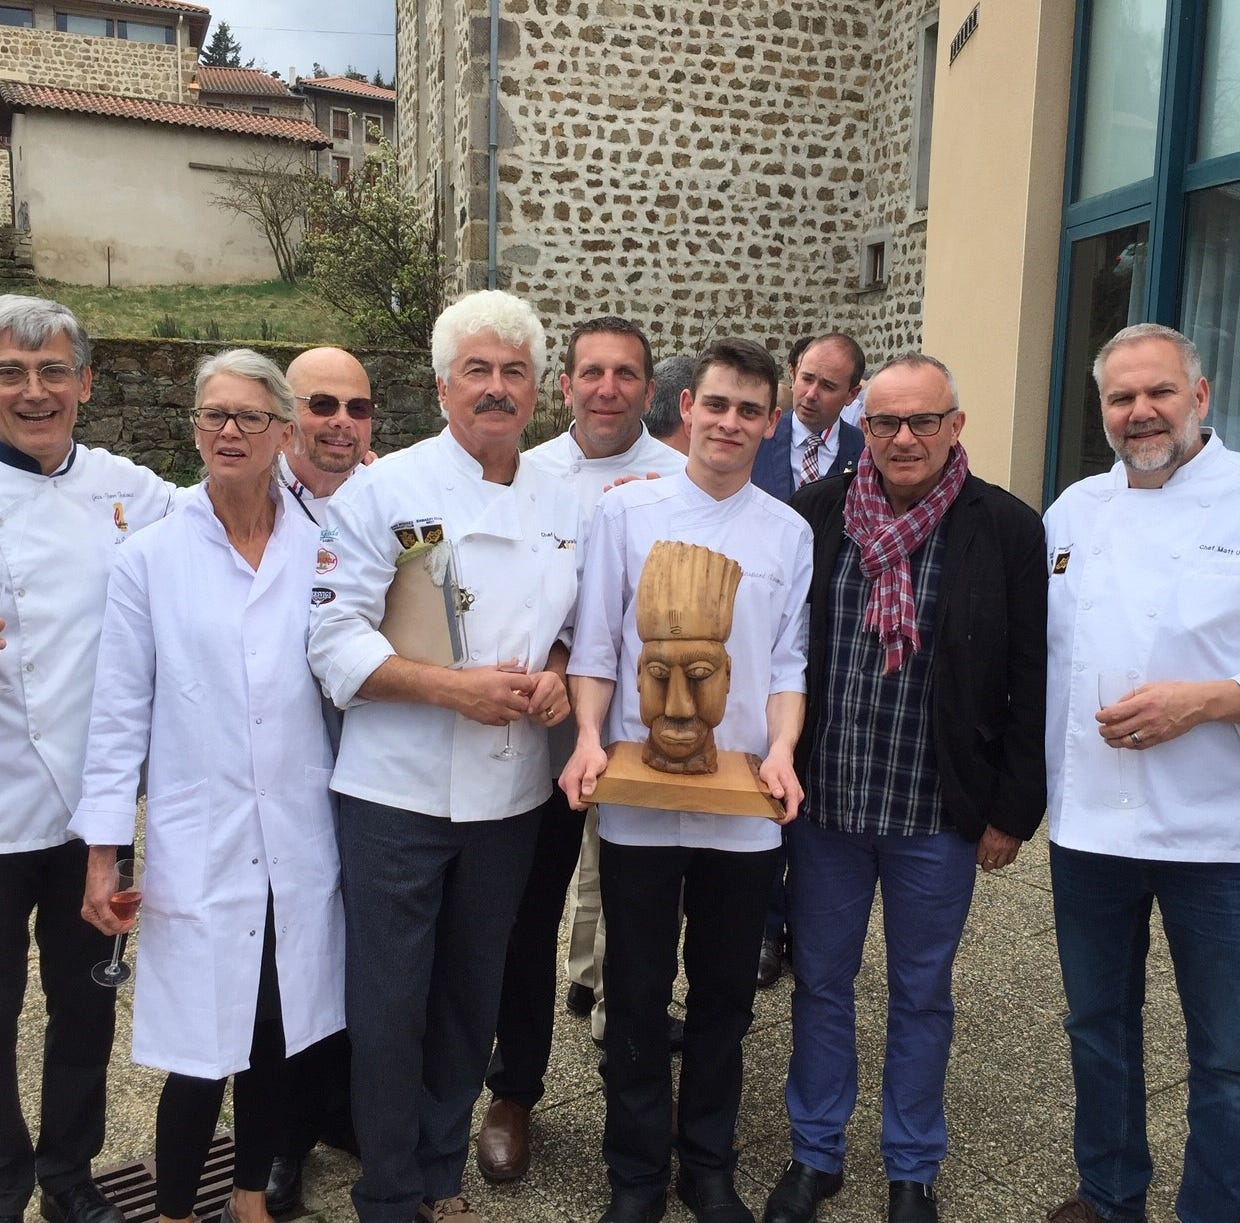 Des Moines has a culinary sister city in France, and these chefs visited for a contest